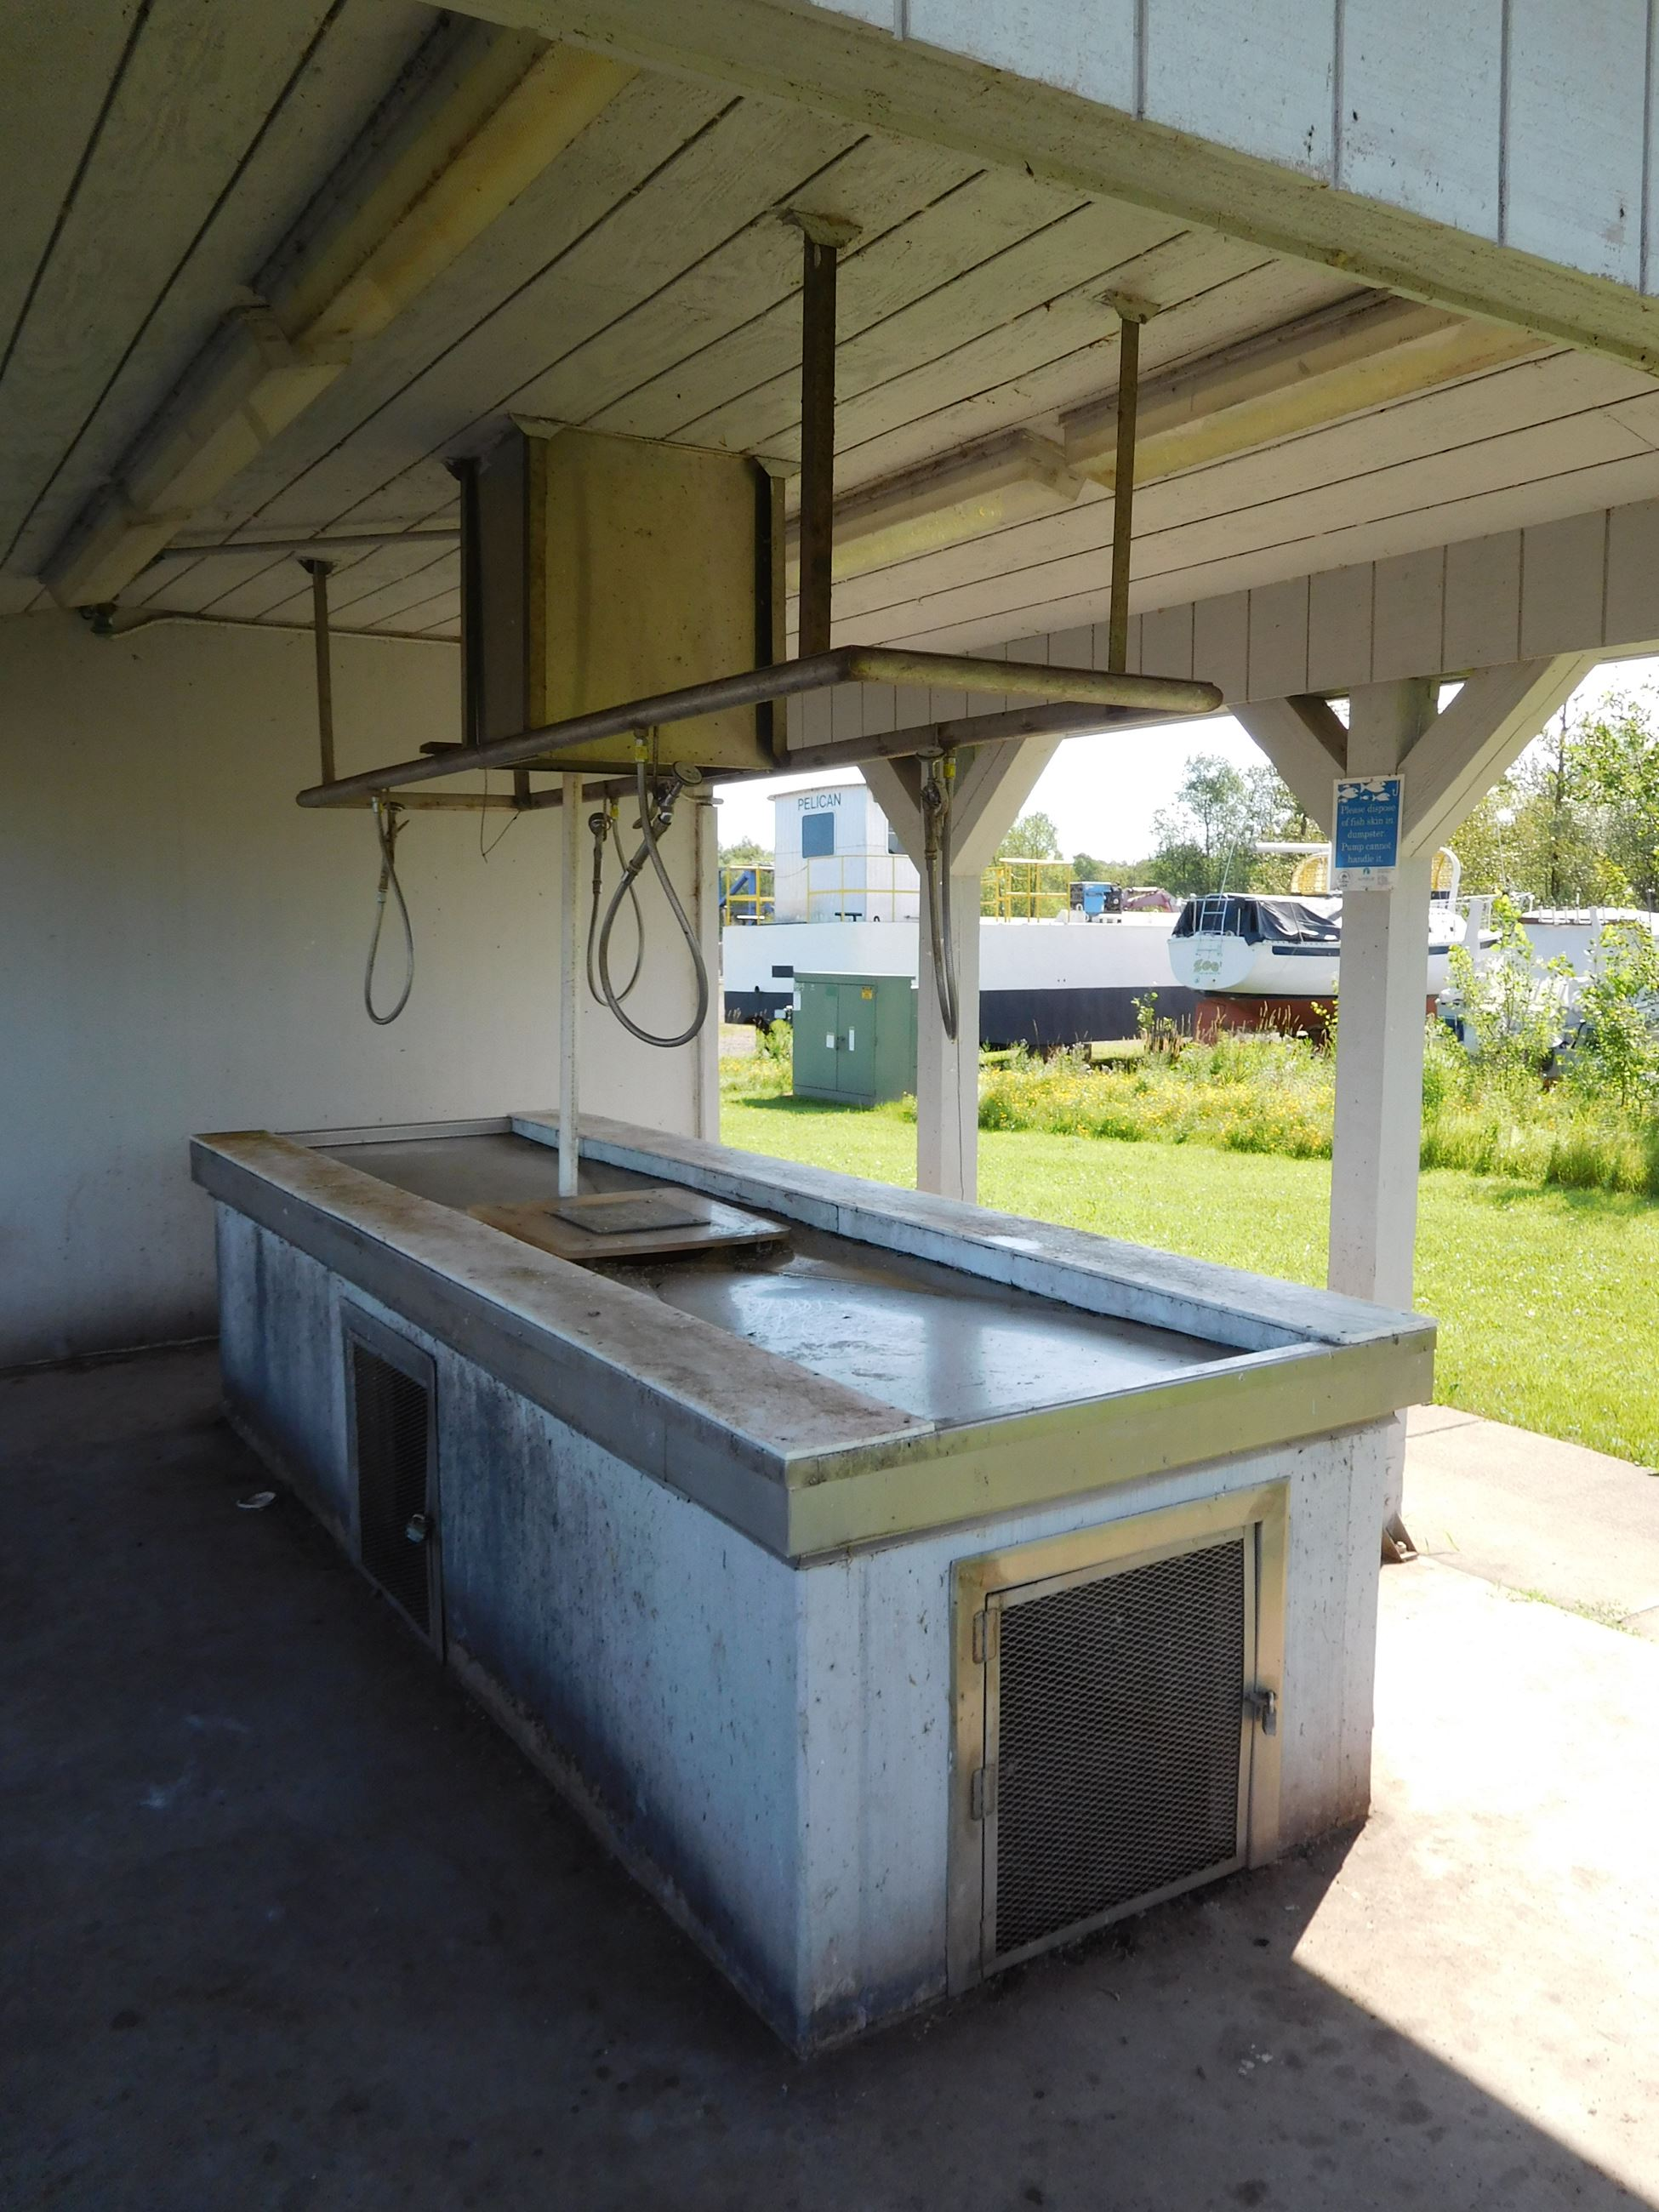 Loon's Foot fishing cleaning station with hoses and cleaning area